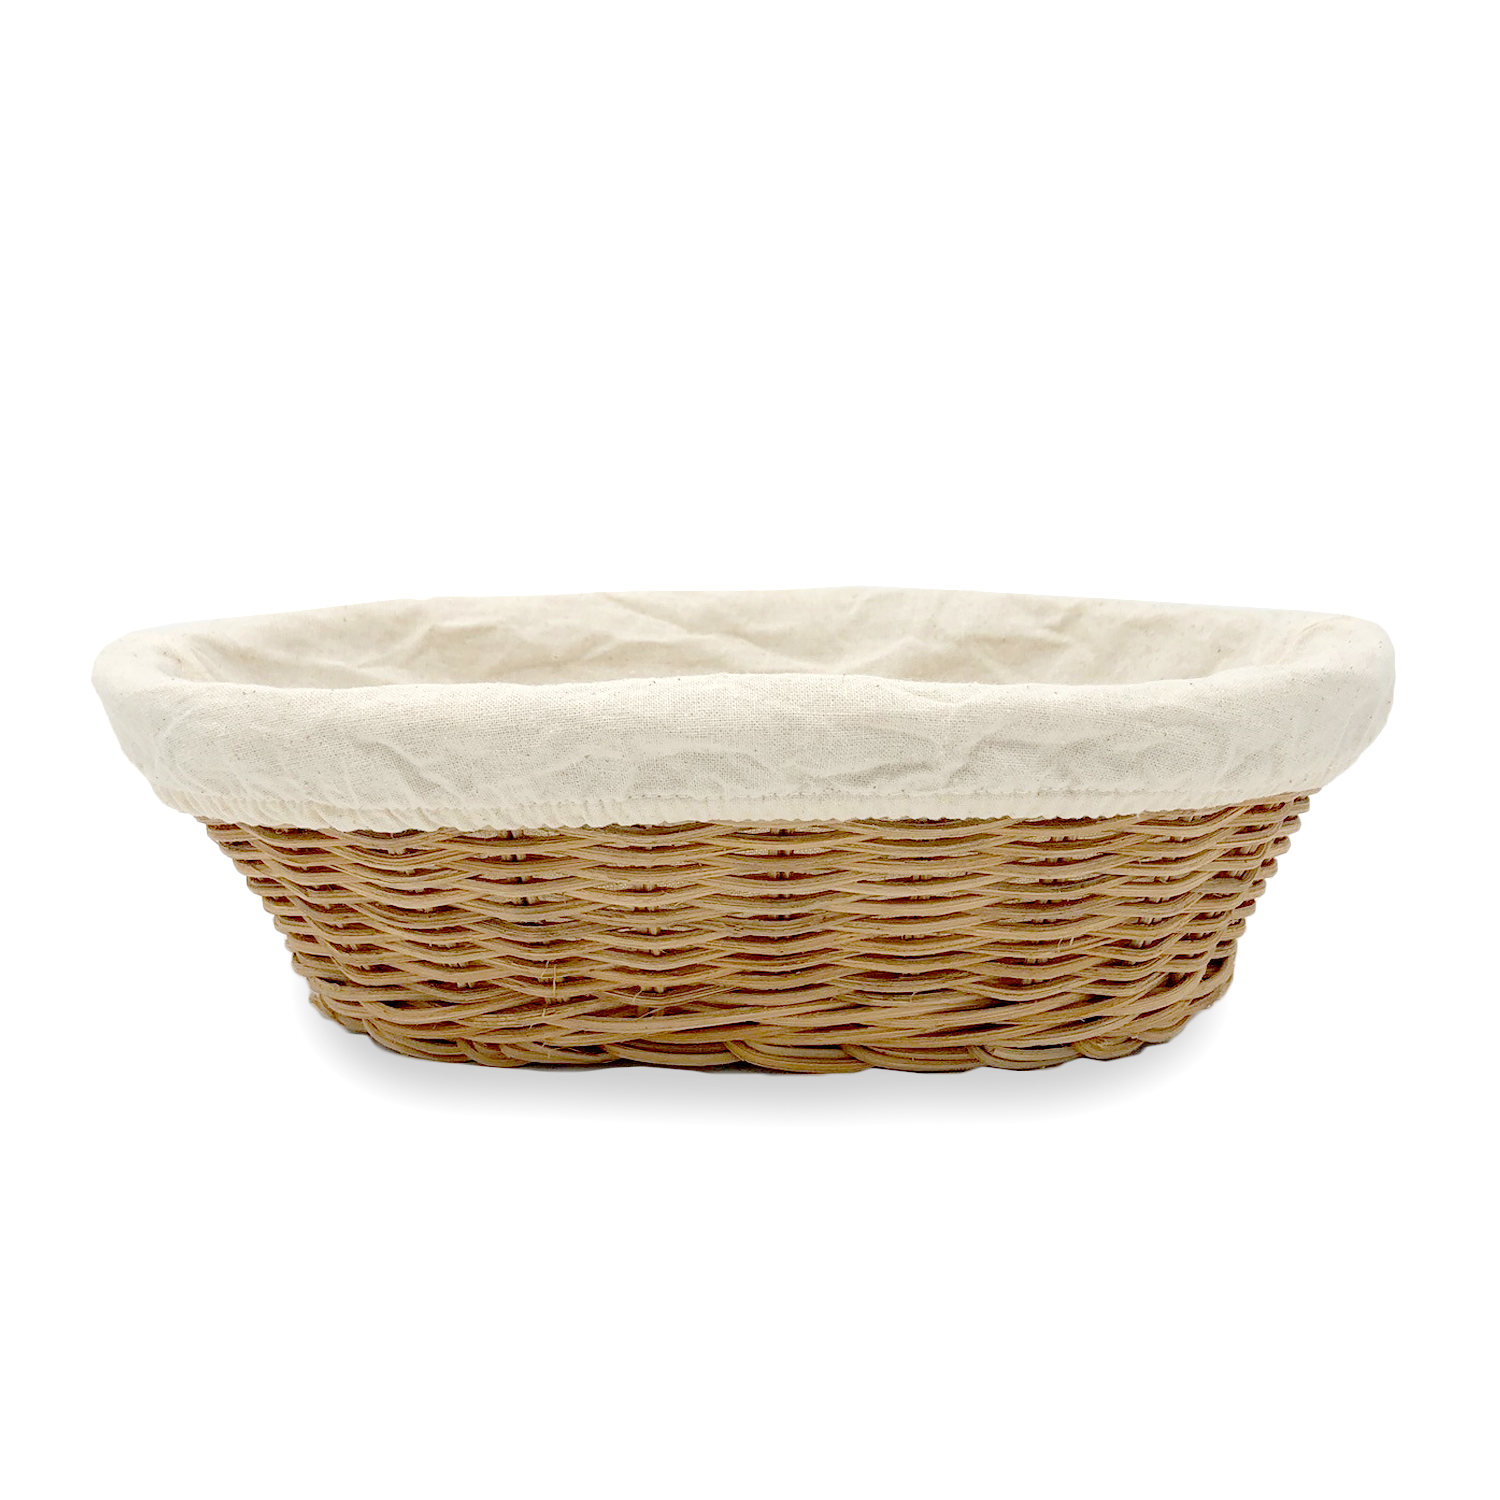 Oval Rattan Utility Basket with Cloth Liner - Natural 9in